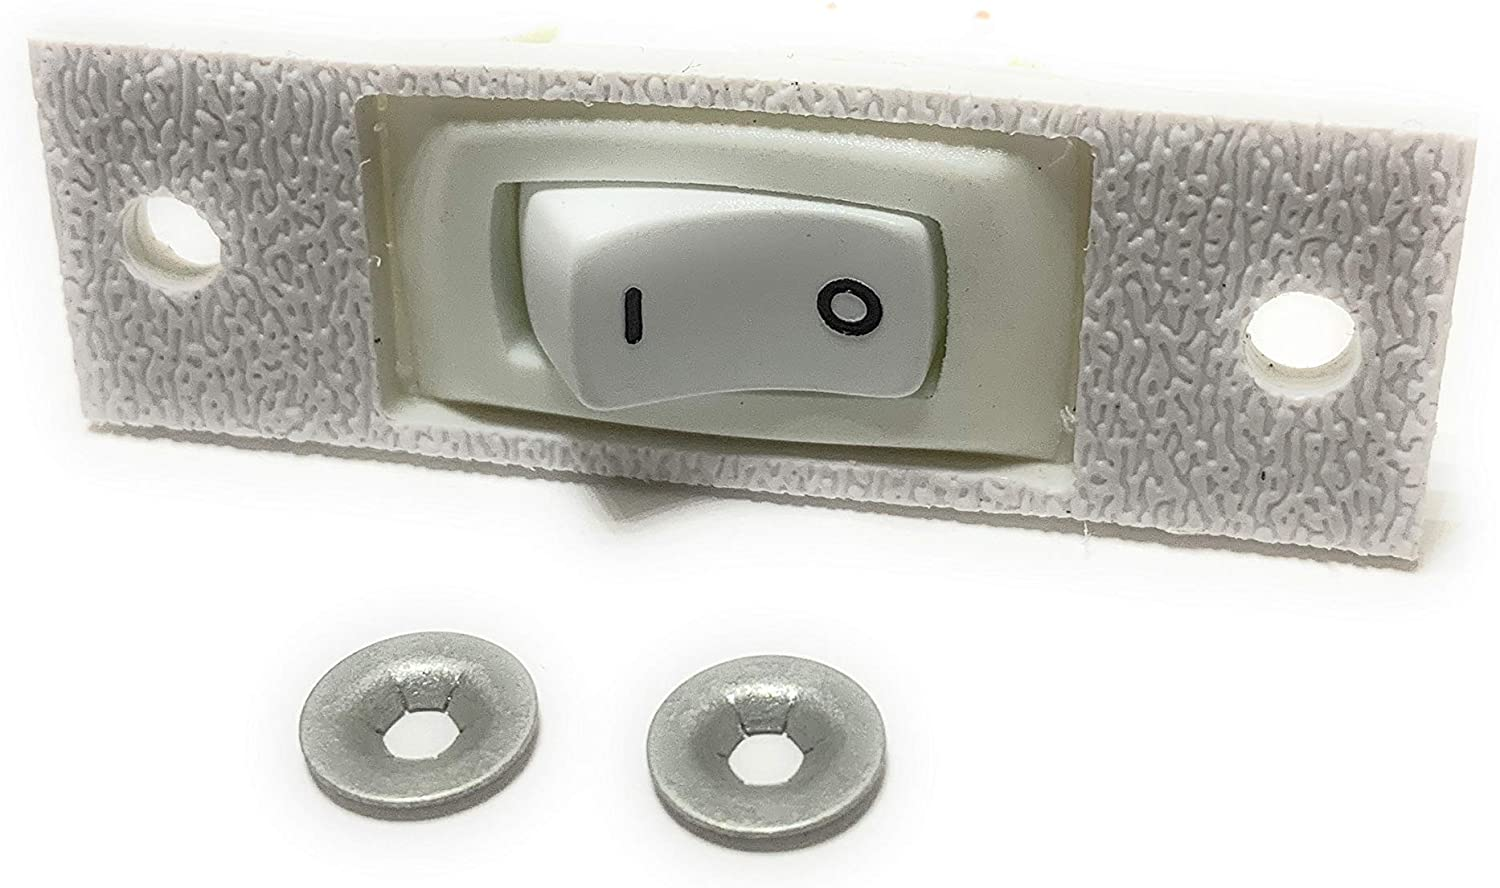 C300 Replacement White Fan Rocker Switch Compatible With Whirlpool Jenn-Air Cooktops